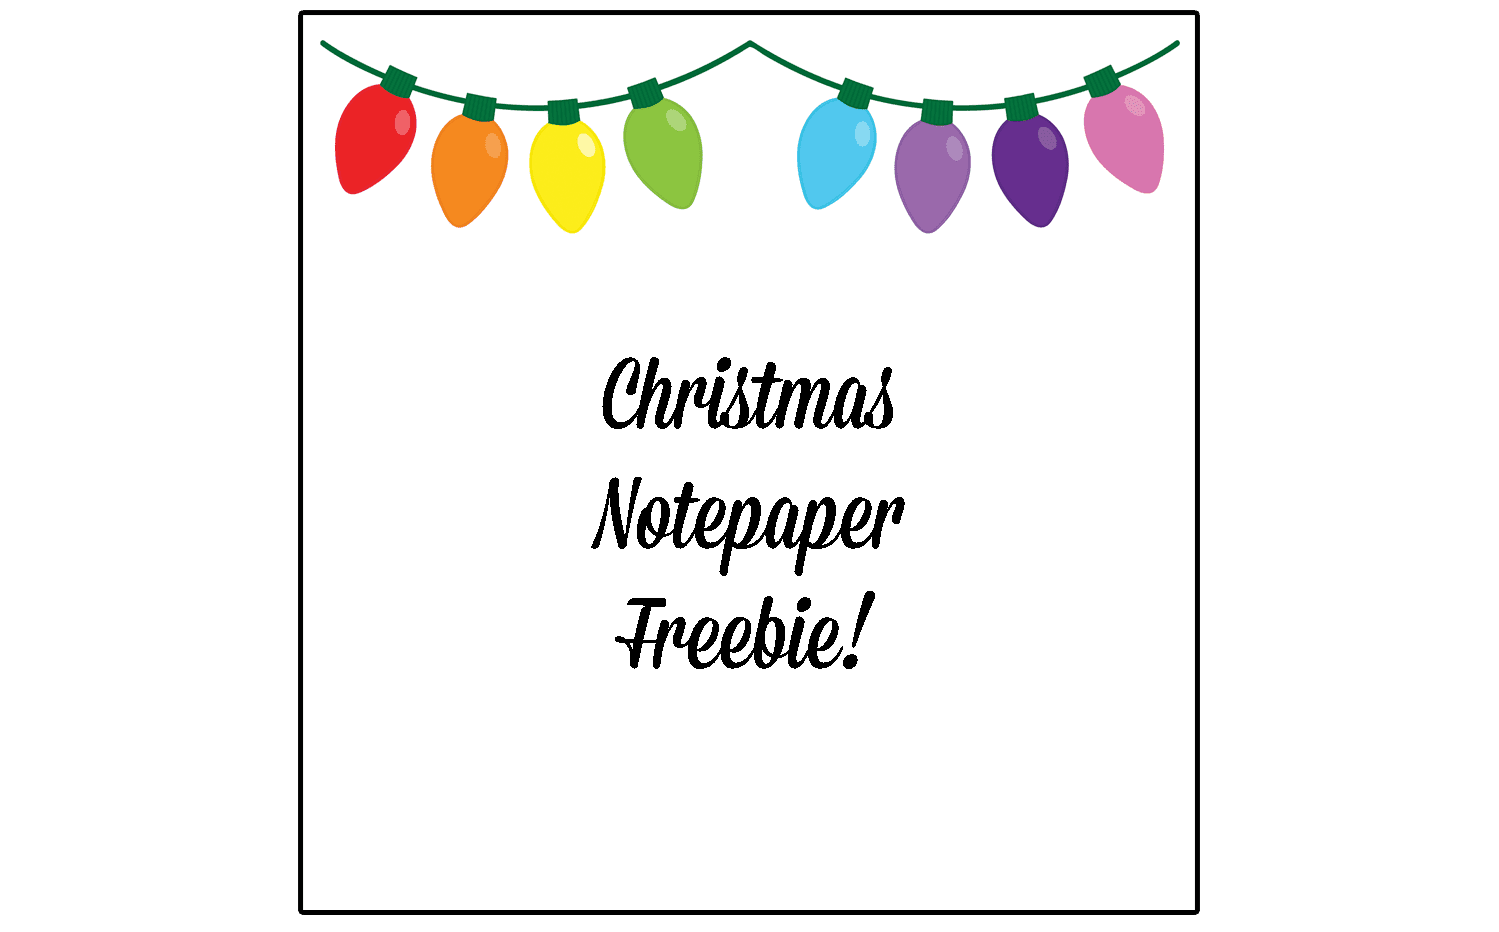 Christmas Clip Art: Christmas Lights Freebie. You can grab a pretty note paper printable (letter-size) with a colorful topping of Christmas lights. #Christmas #gradeonederful #christmasprintables #christmasclipart